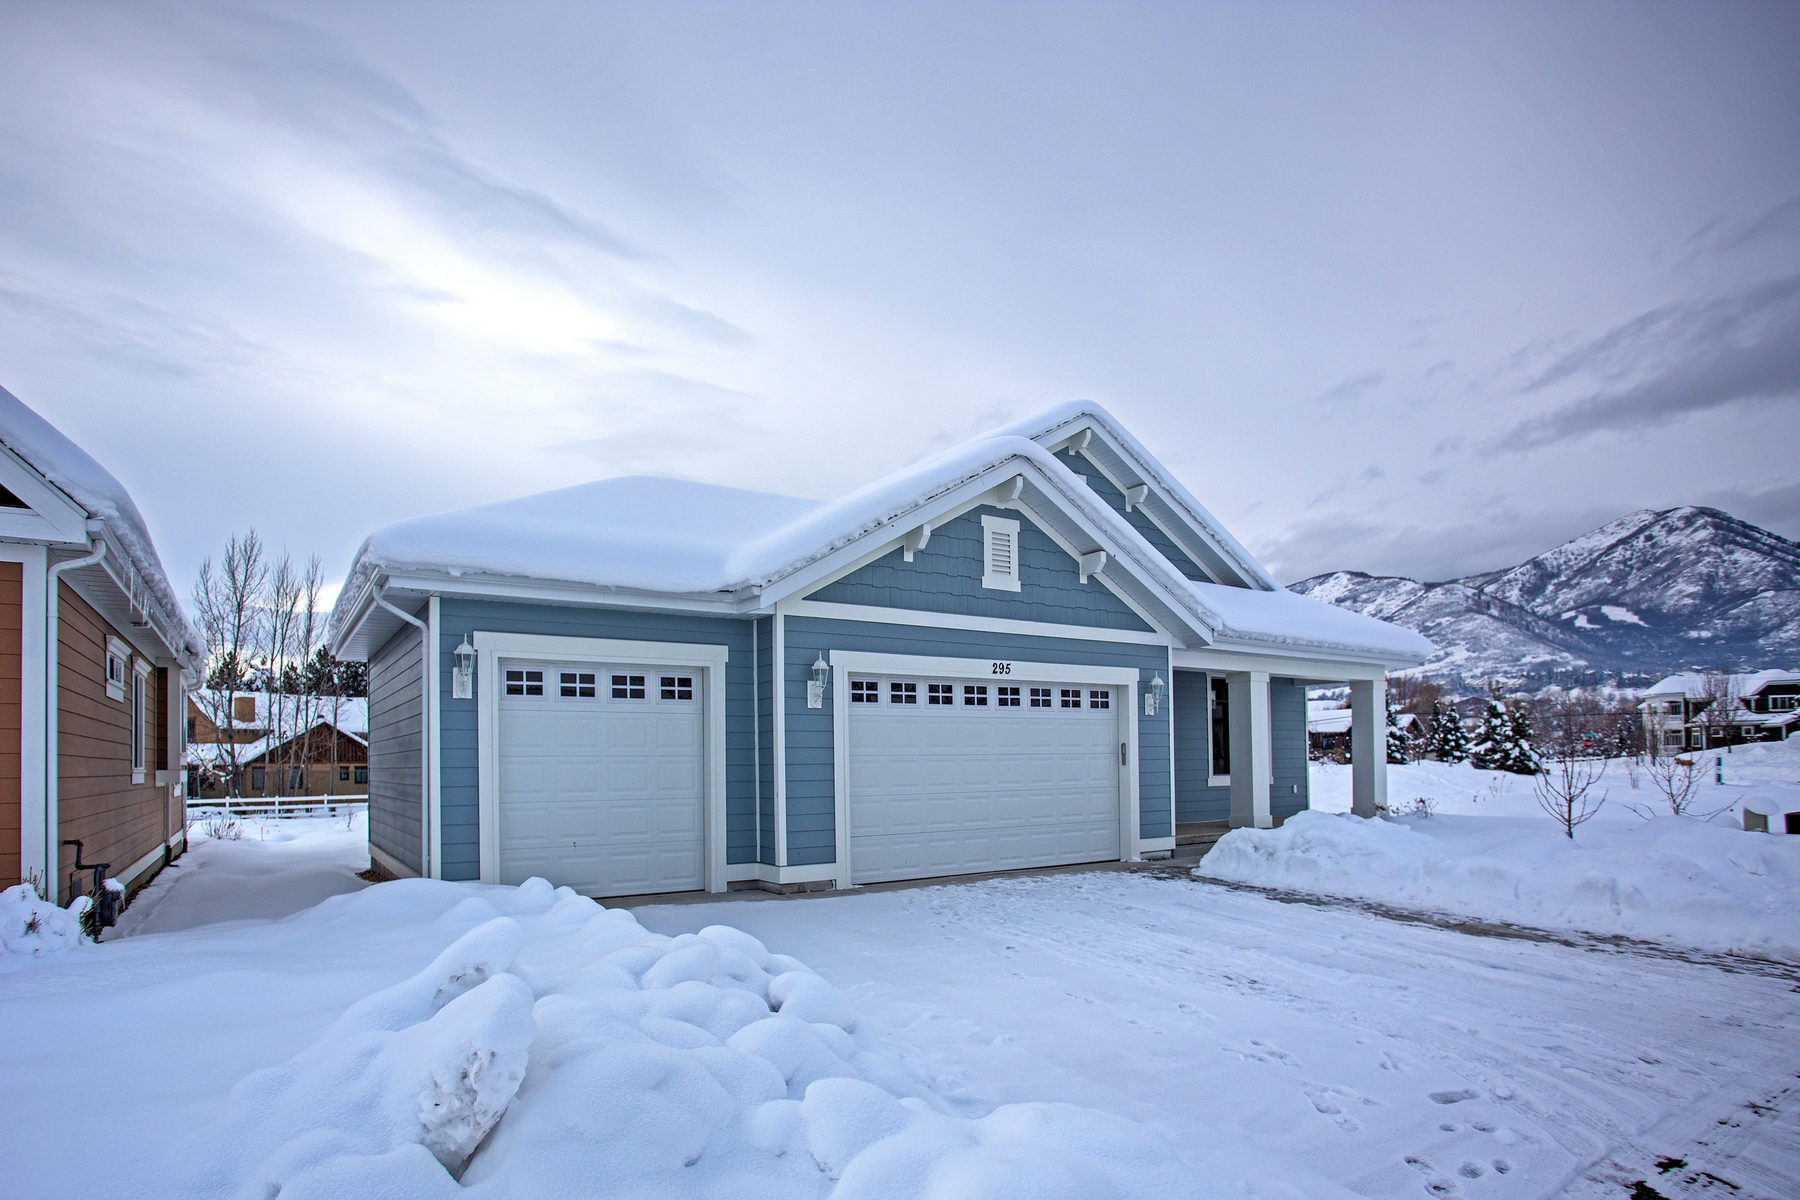 Single Family Home for Sale at Country Living in Midway Village 295 W Burnts Fields Dr Midway, Utah 84049 United States